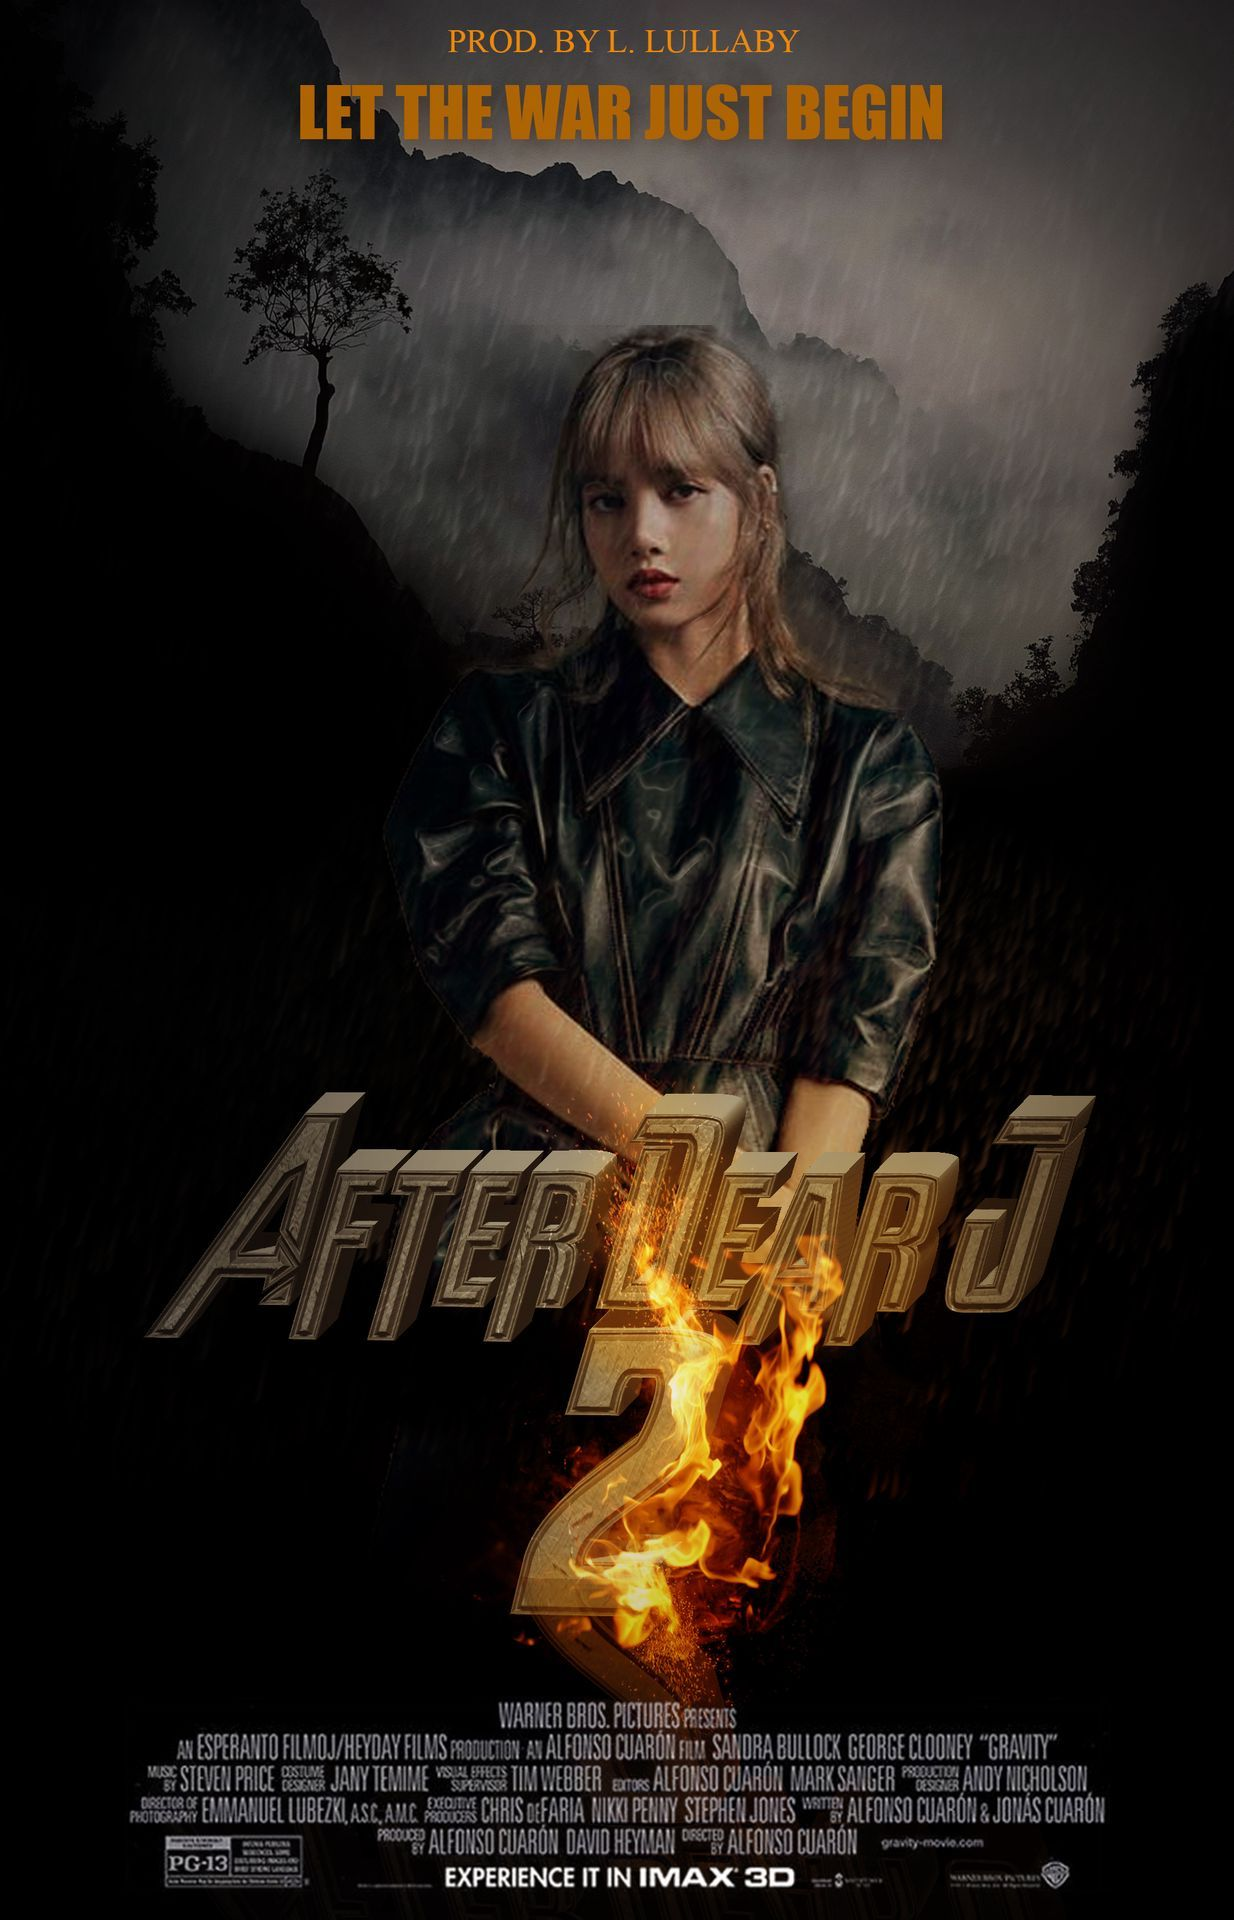 4. After WITH J hereditary in 2020 Alfonso cuarón